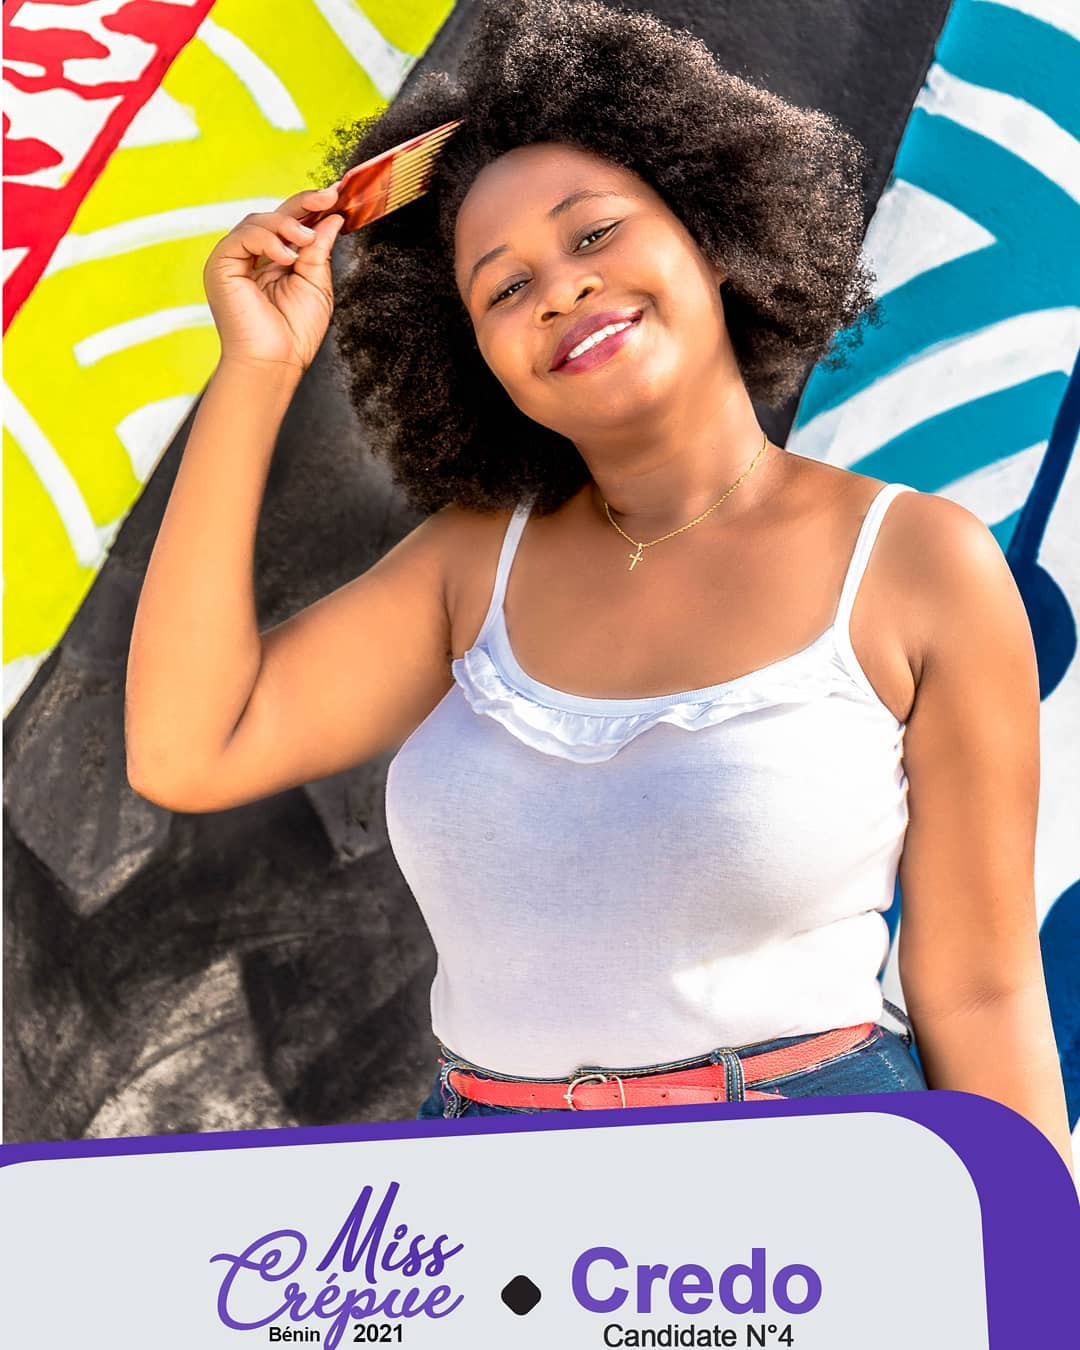 candidatas a miss crepue benin 2021. final: 31 july. OqN0xe